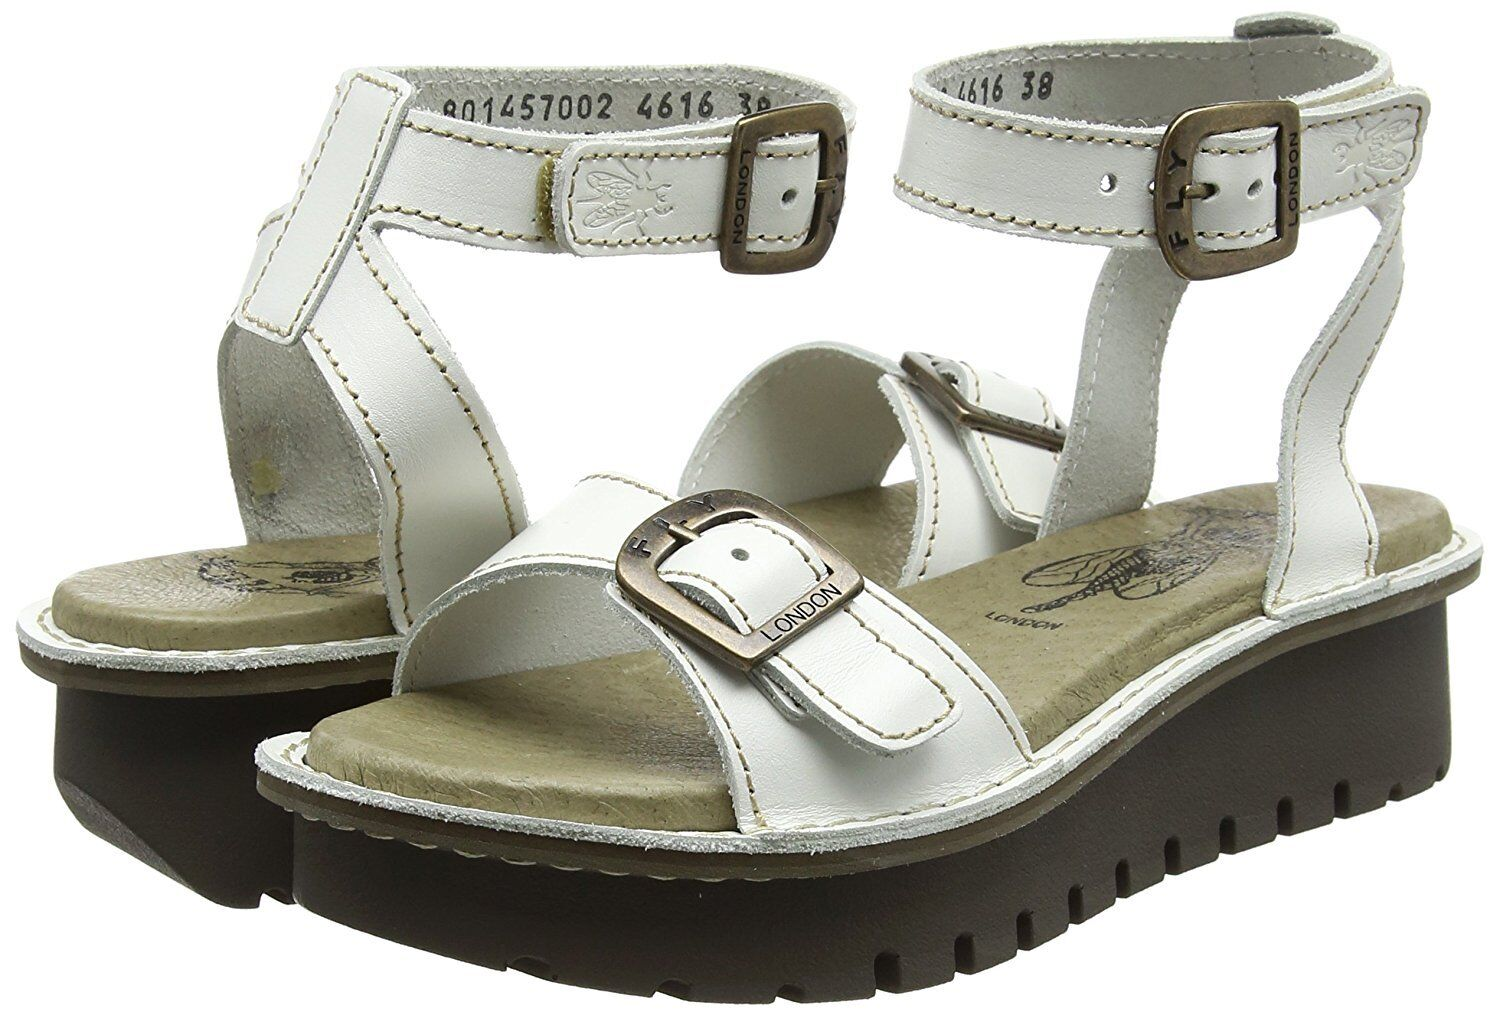 FLY LONDON KYRA457FLY OFF-WHITE LEATHER WEDGE SANDALS UK 4 EUR 37 BNIB